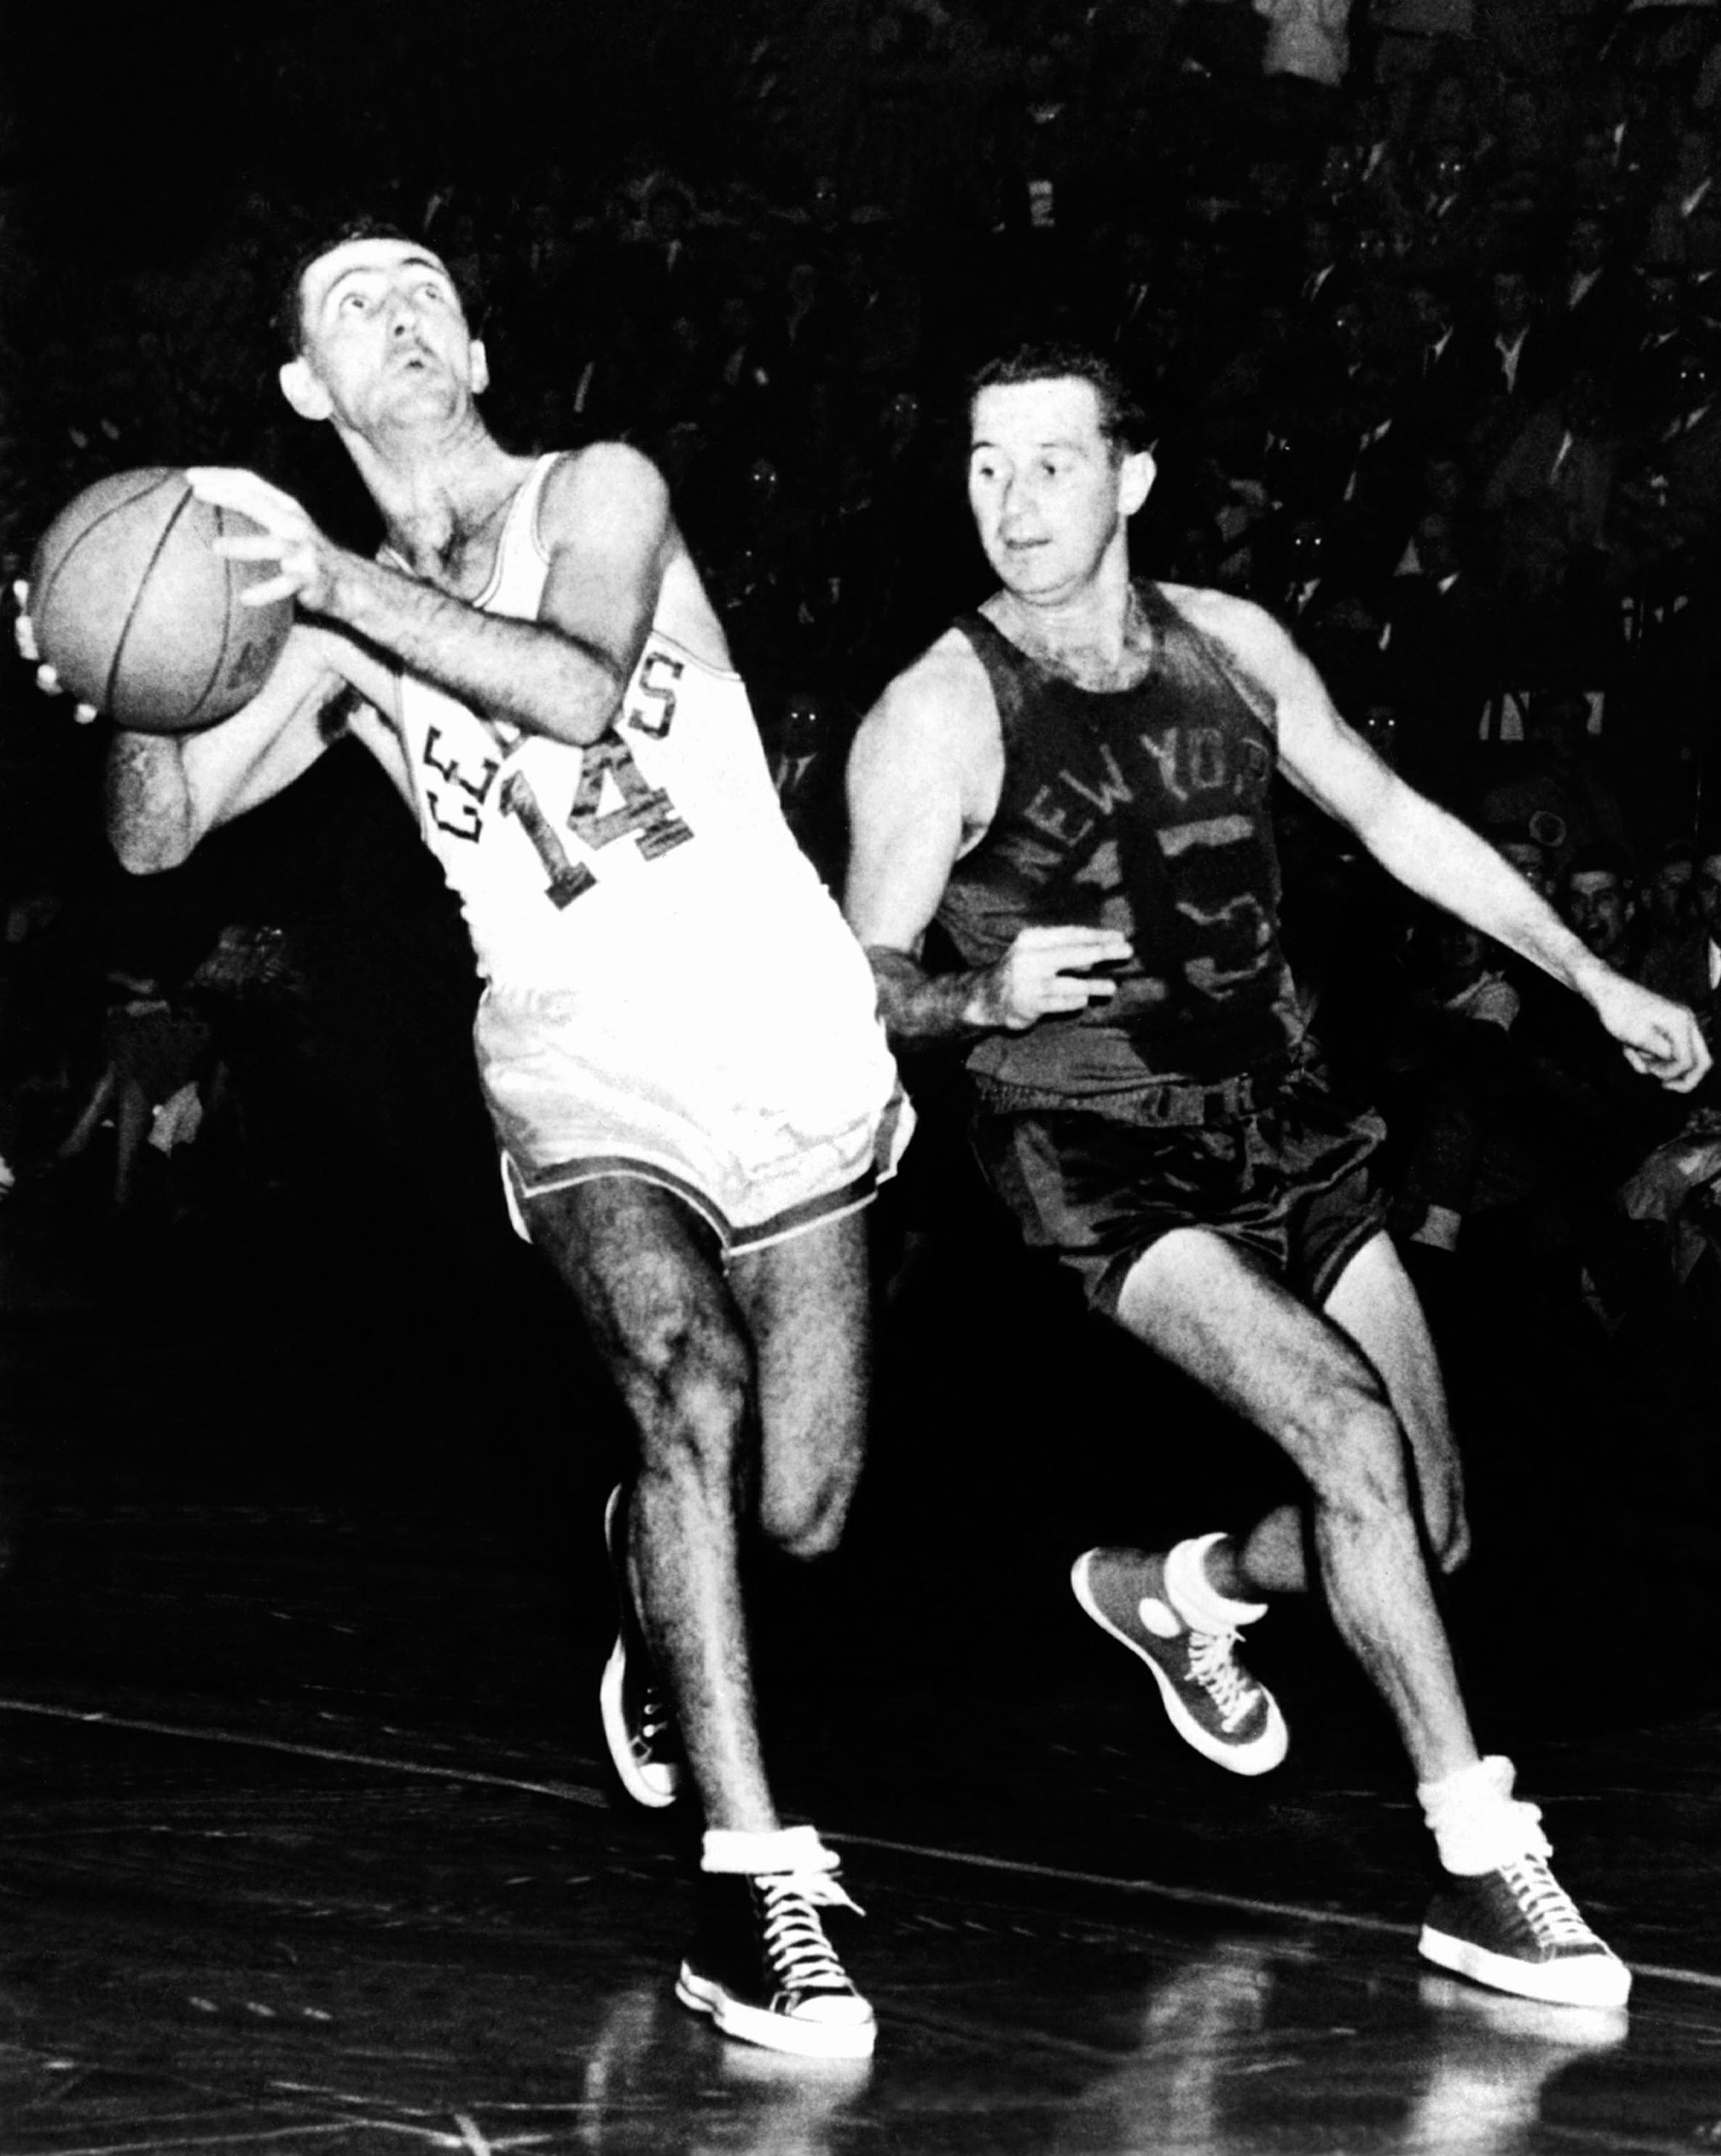 Bob Cousy #14 of the Boston Celtics drives to the basket against Dick McGuire #15 of the New York Knicks at the Boston Garden circa 1950 in Boston.